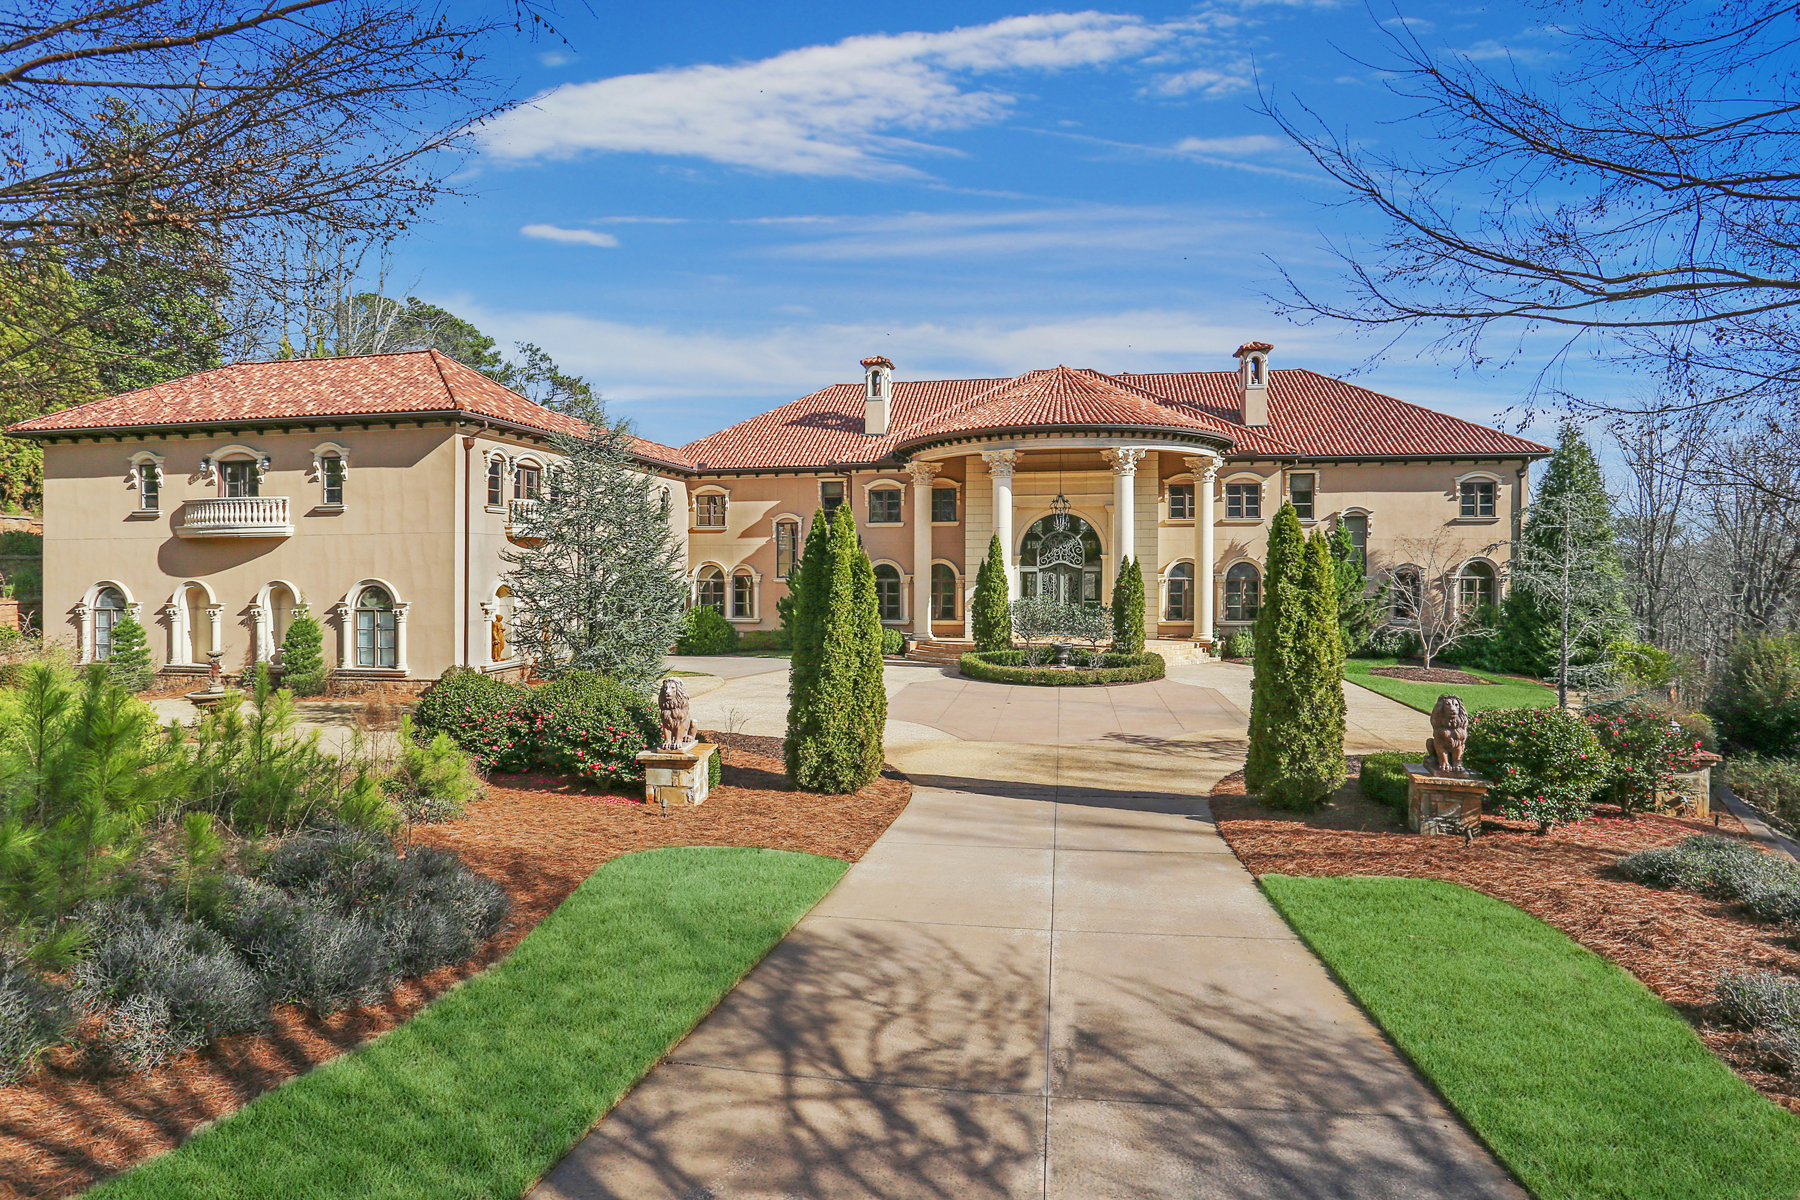 Single Family Homes for Active at Expansive Mediterranean Estate 5115 Northside Drive Atlanta, Georgia 30327 United States